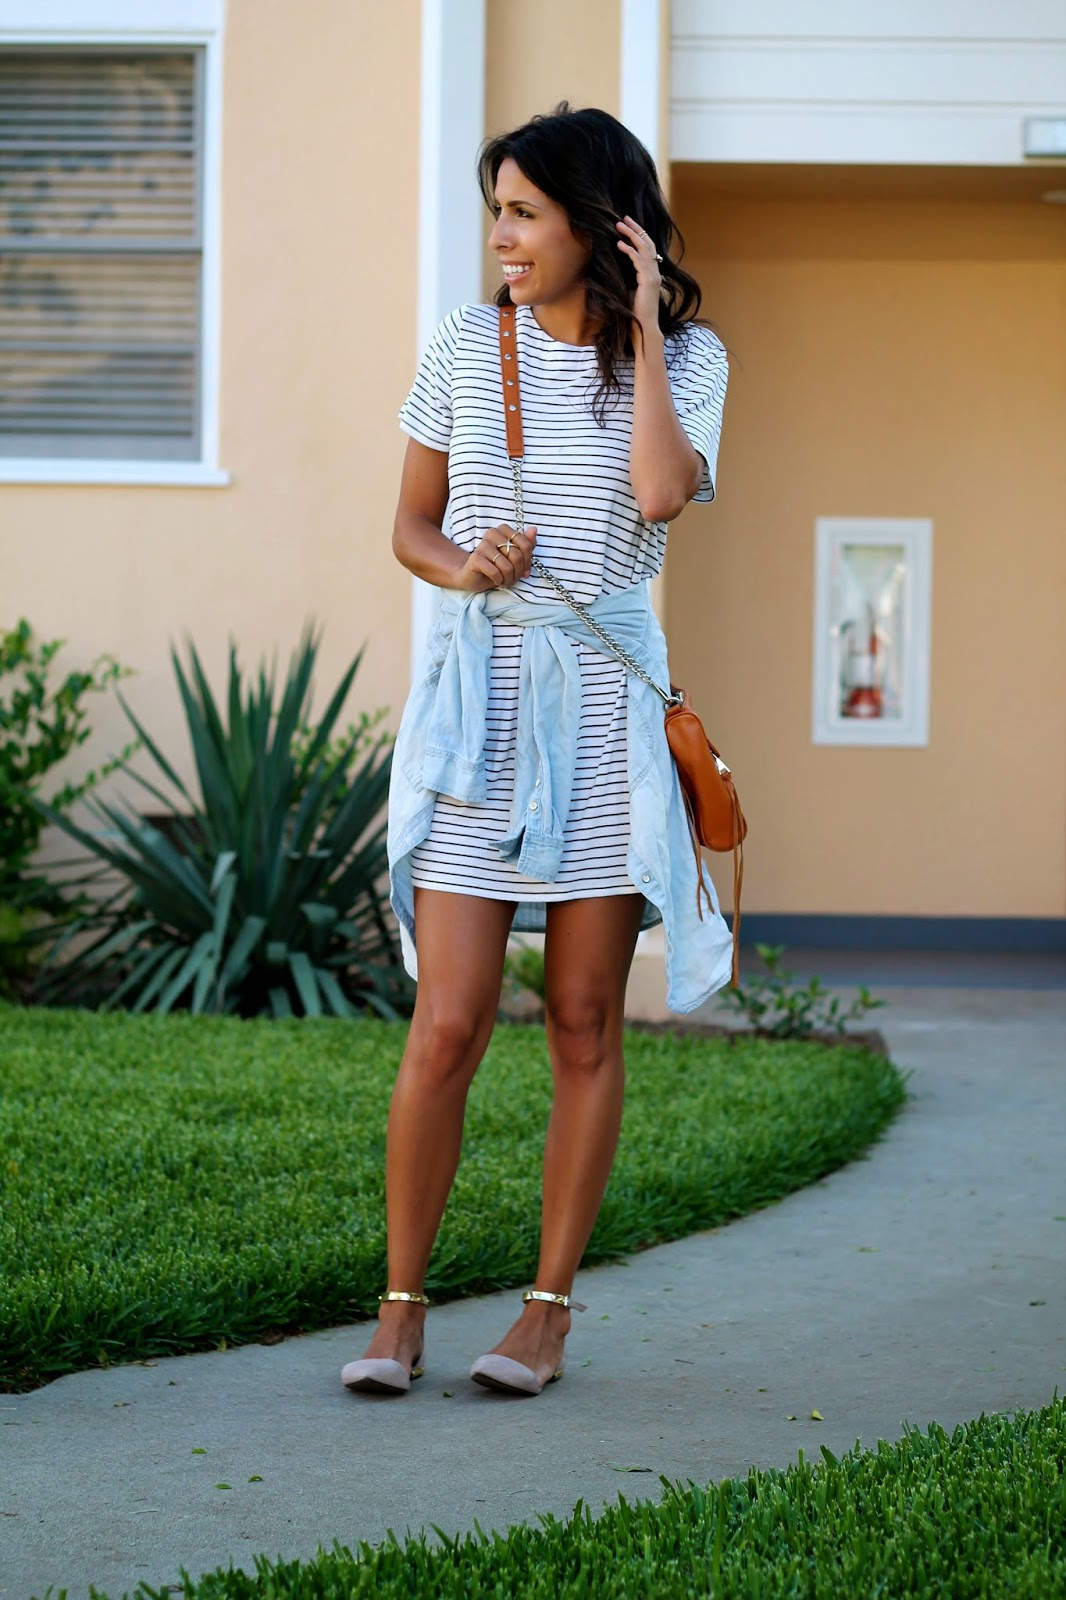 target style, striped dress, summer outfit ideas, rebecca minkoff